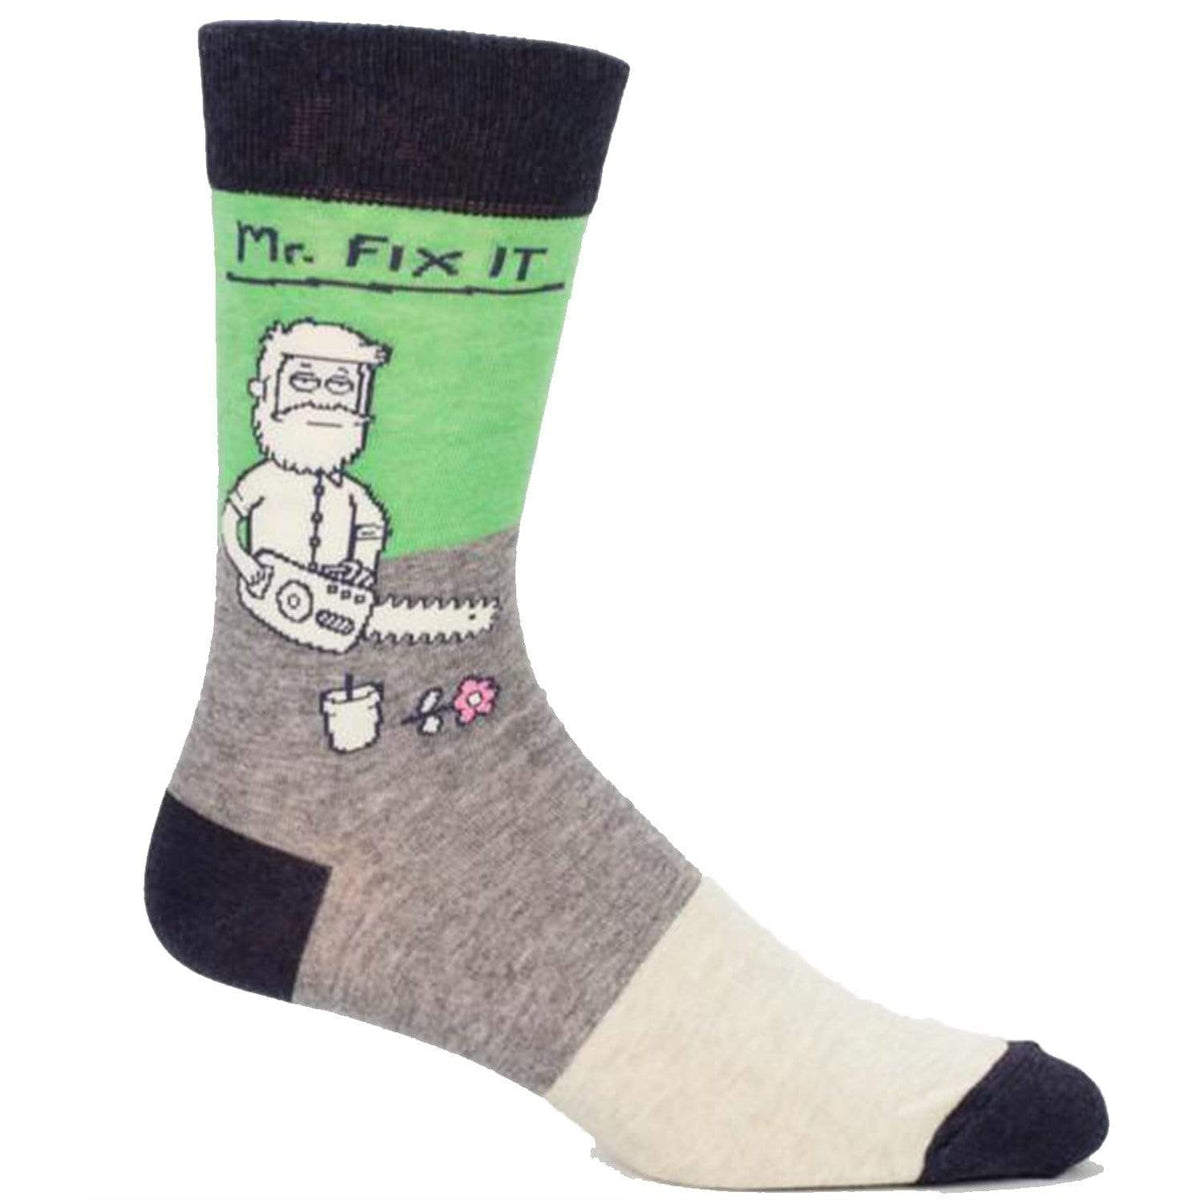 Mr. Fix It Socks Men's Crew Sock gray